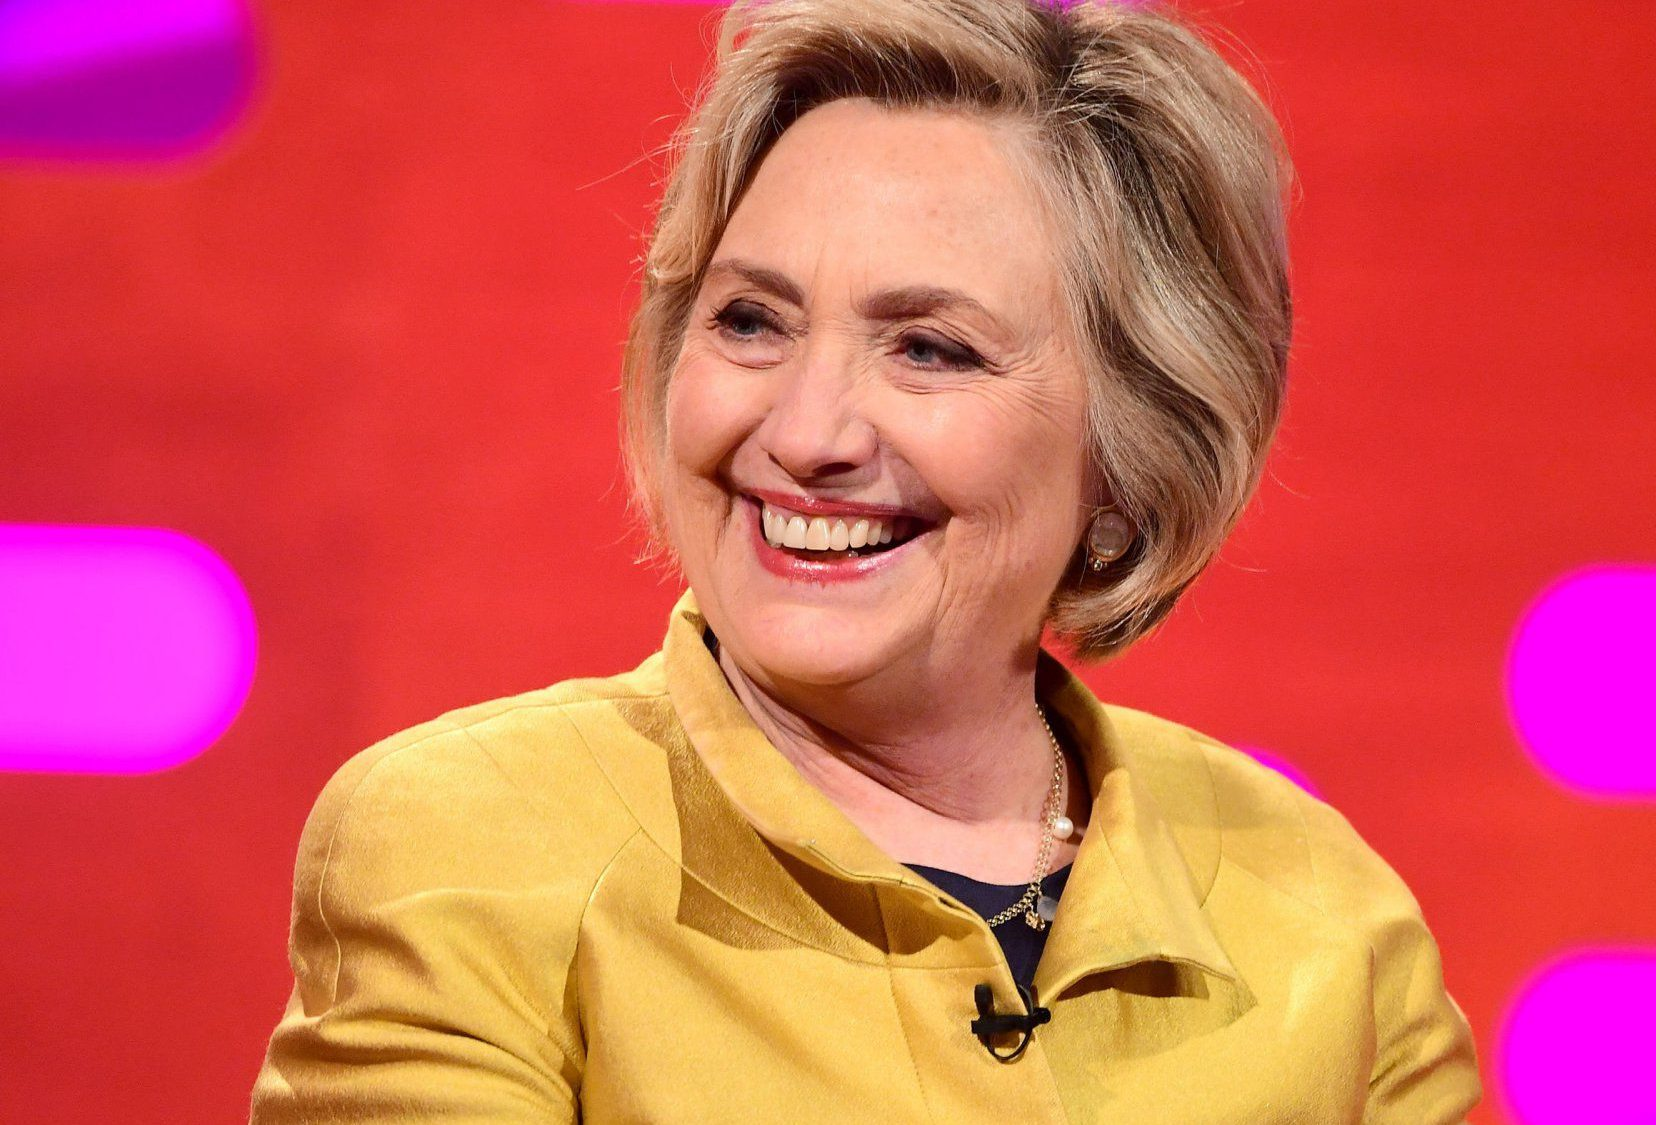 Hillary Clinton admits she had 'her fair share of Chardonnay' after losing to Trump